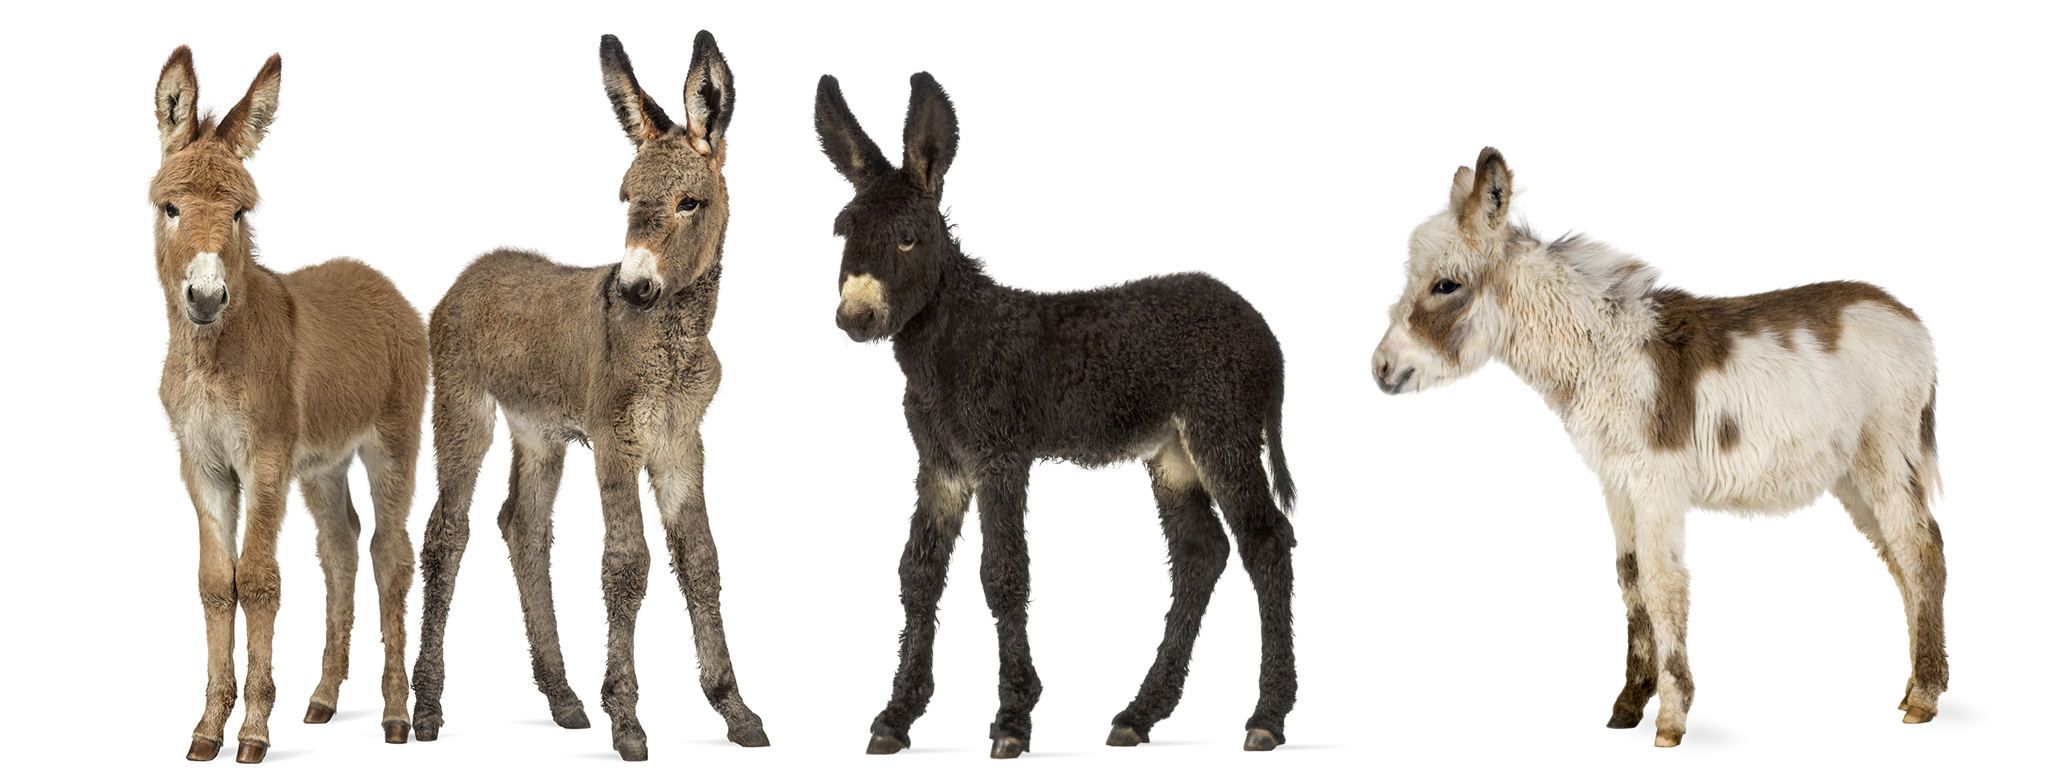 Donkeys with different coat colors and hair lengths